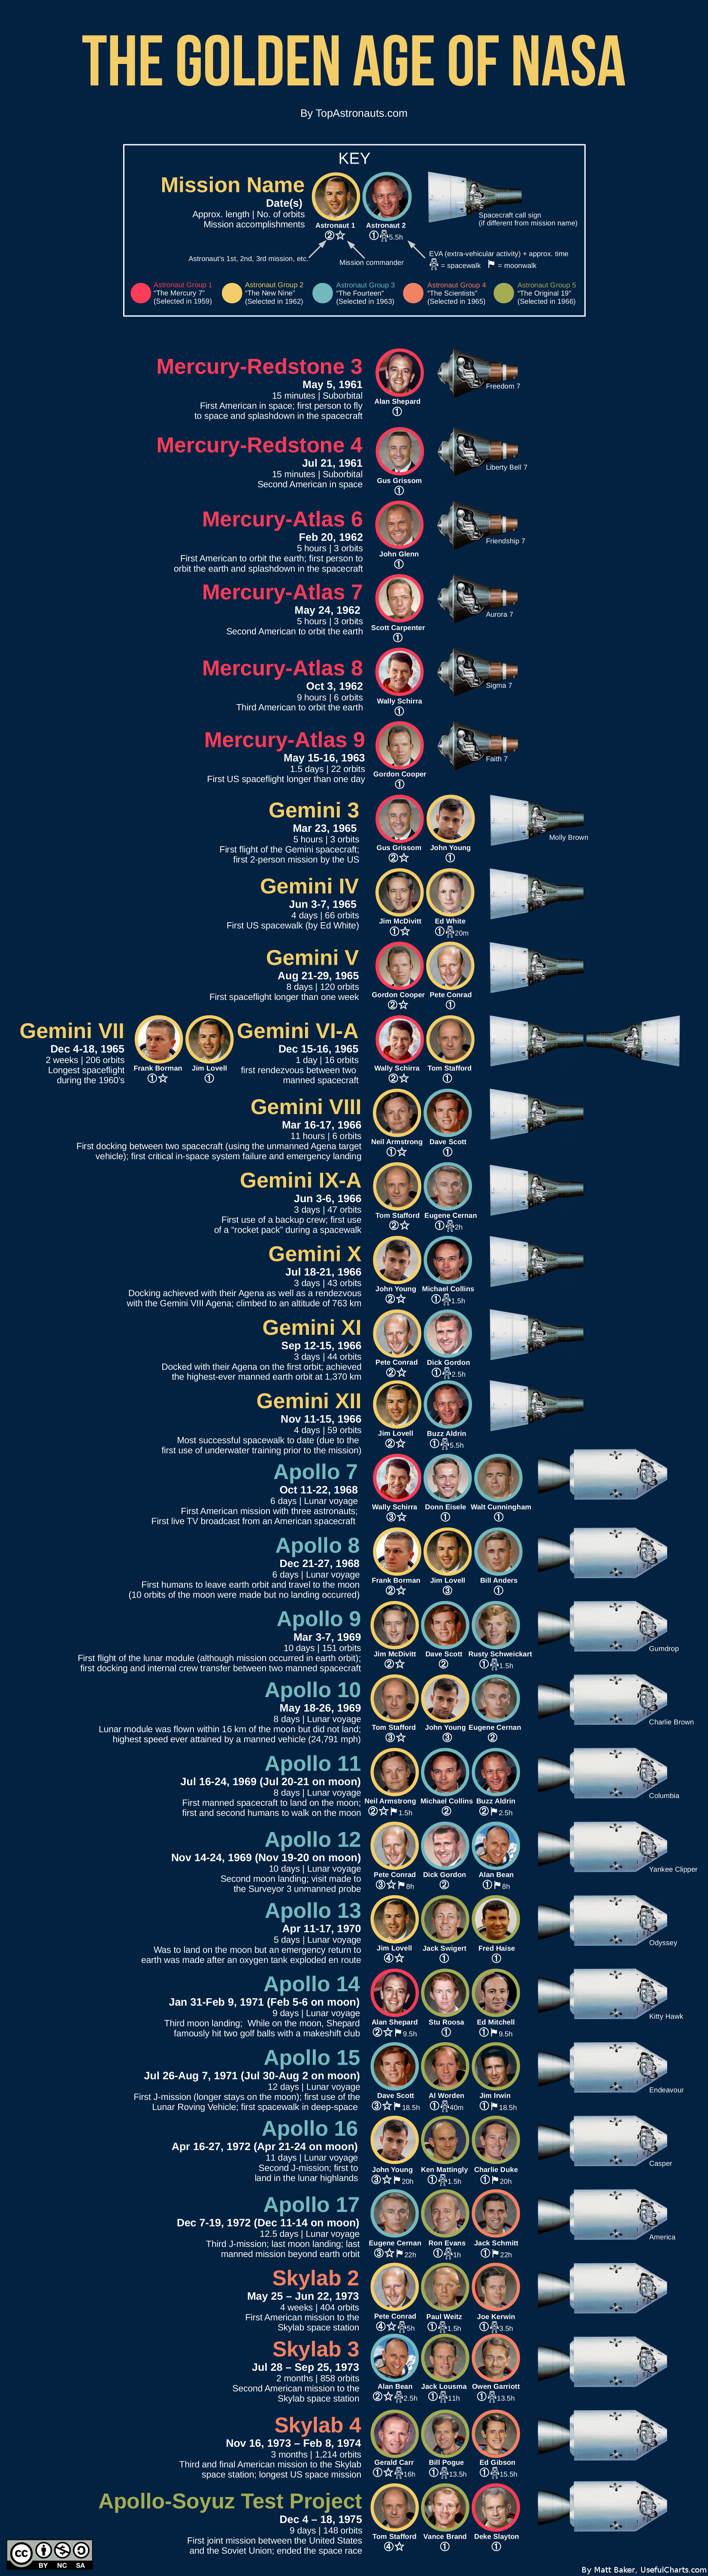 NASA Golden Age of Space Travel » ChartGeek.com